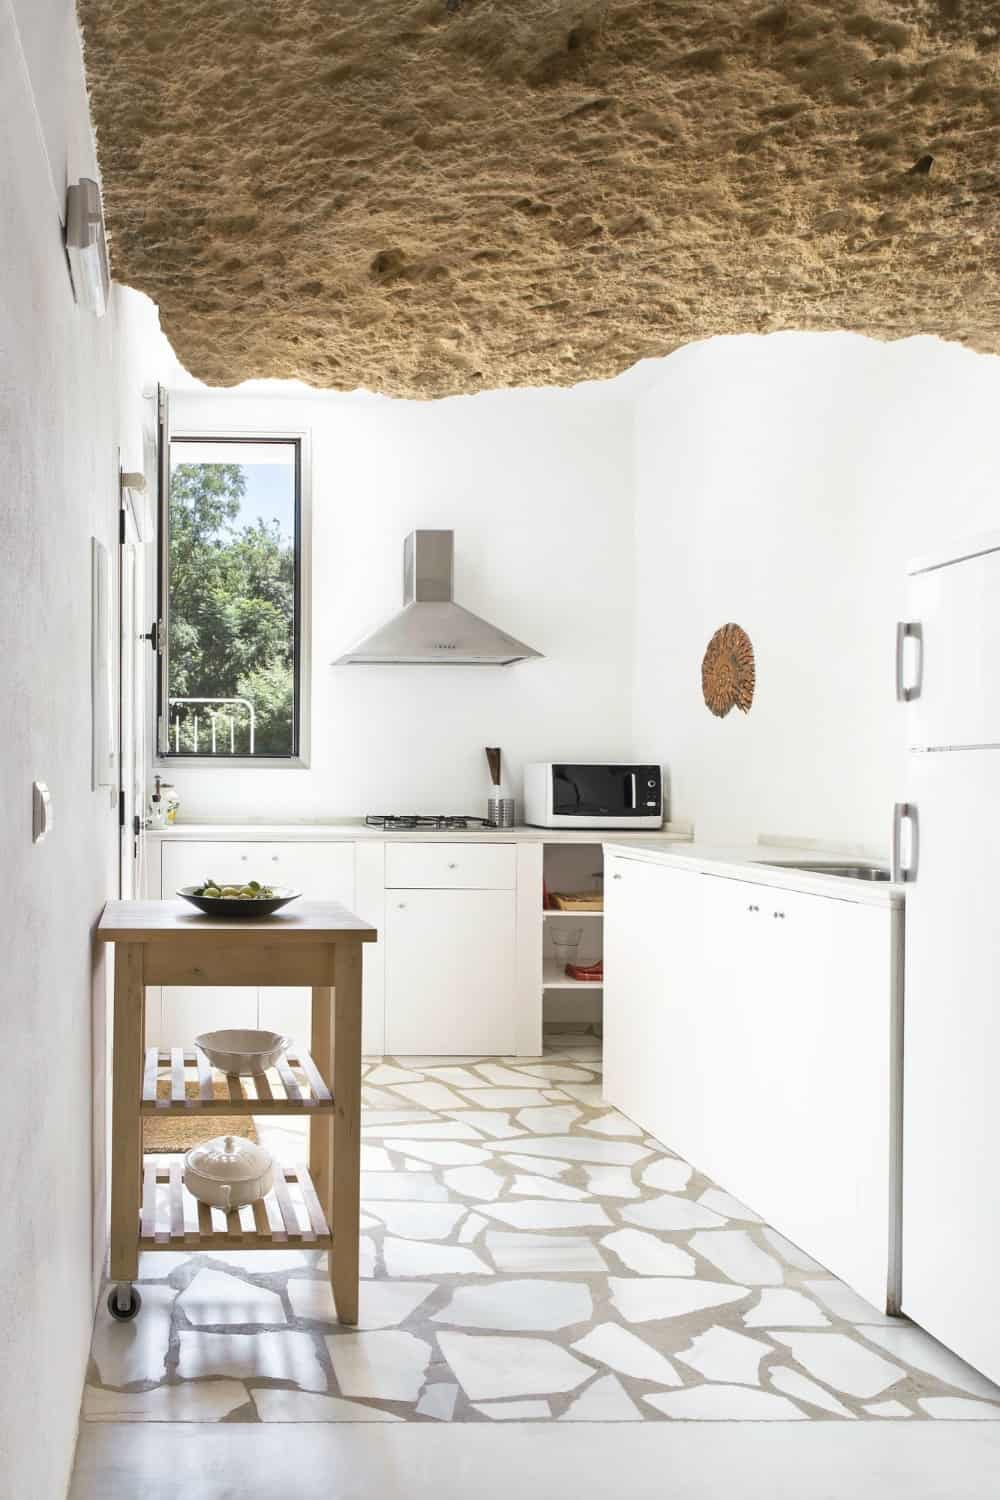 A window allows plenty of natural light in lighting up the white kitchen beautifully